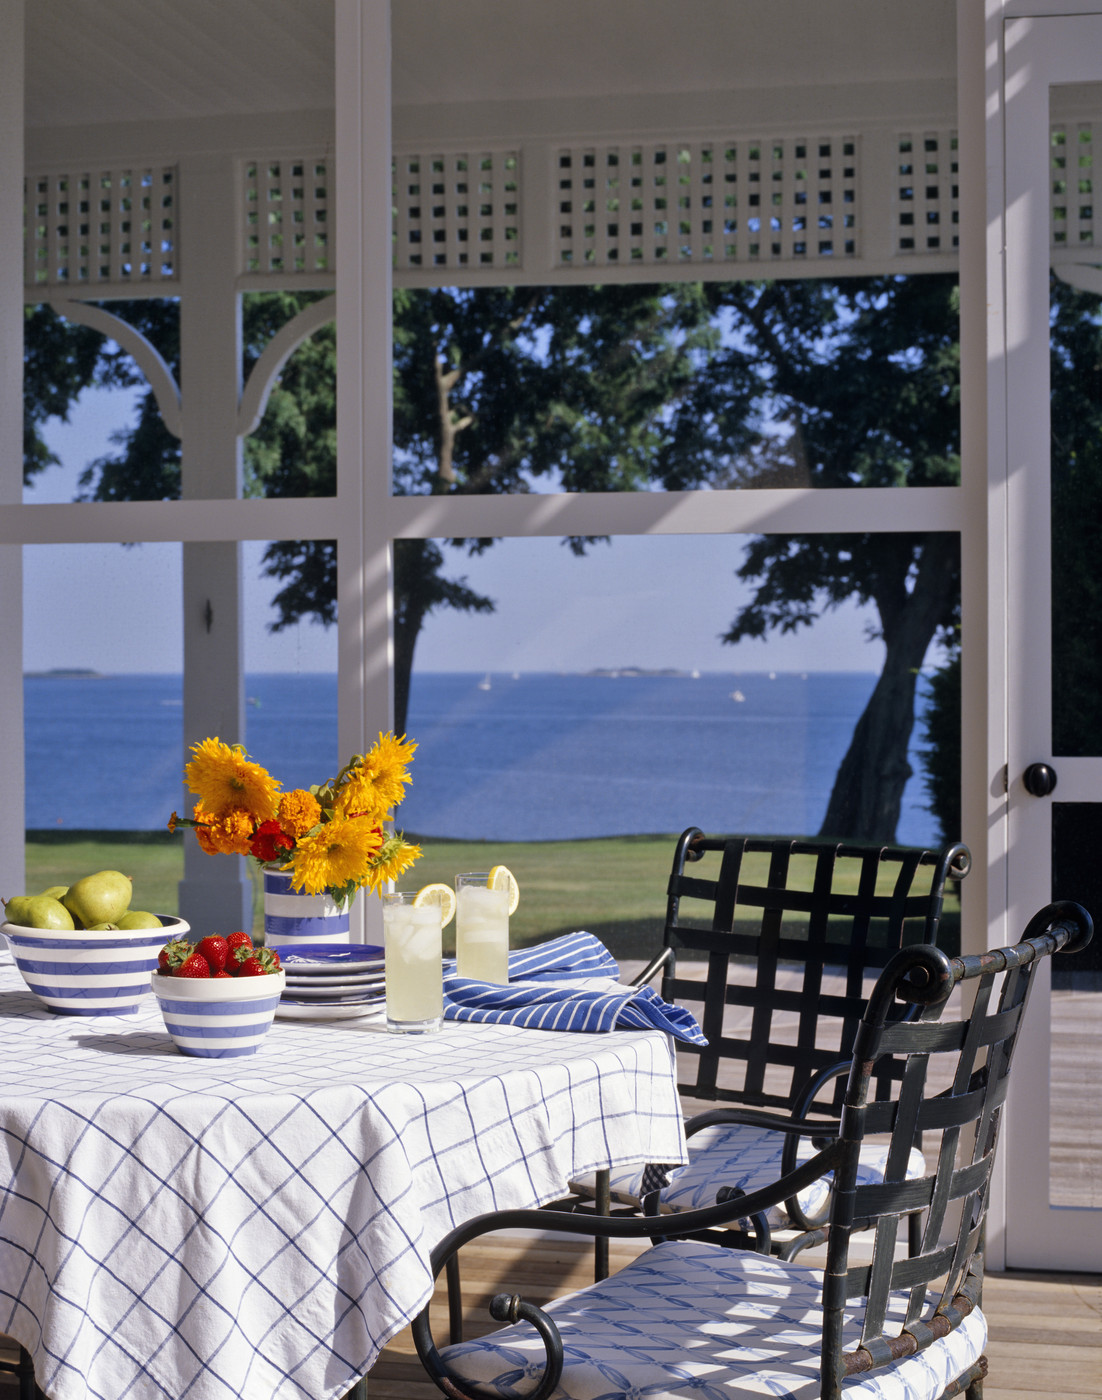 Classic grid tablecloth on a sunny porch